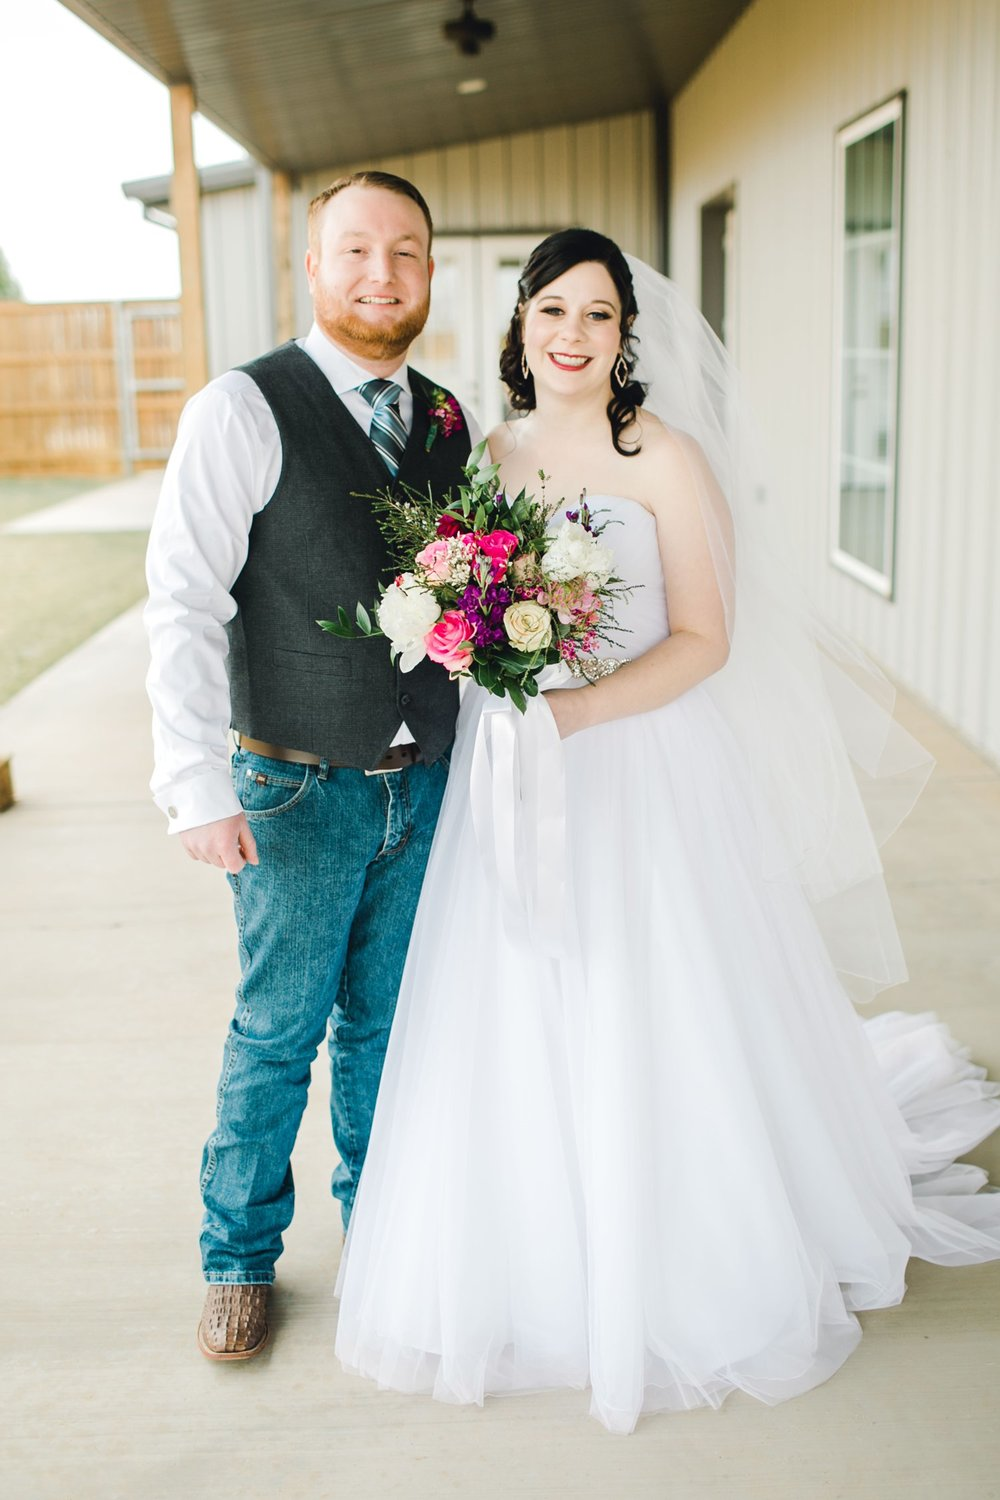 Autumn-Oaks-Events-Morgan-Andy-Lane-Wedding-Lubbock-Photography__0029.jpg